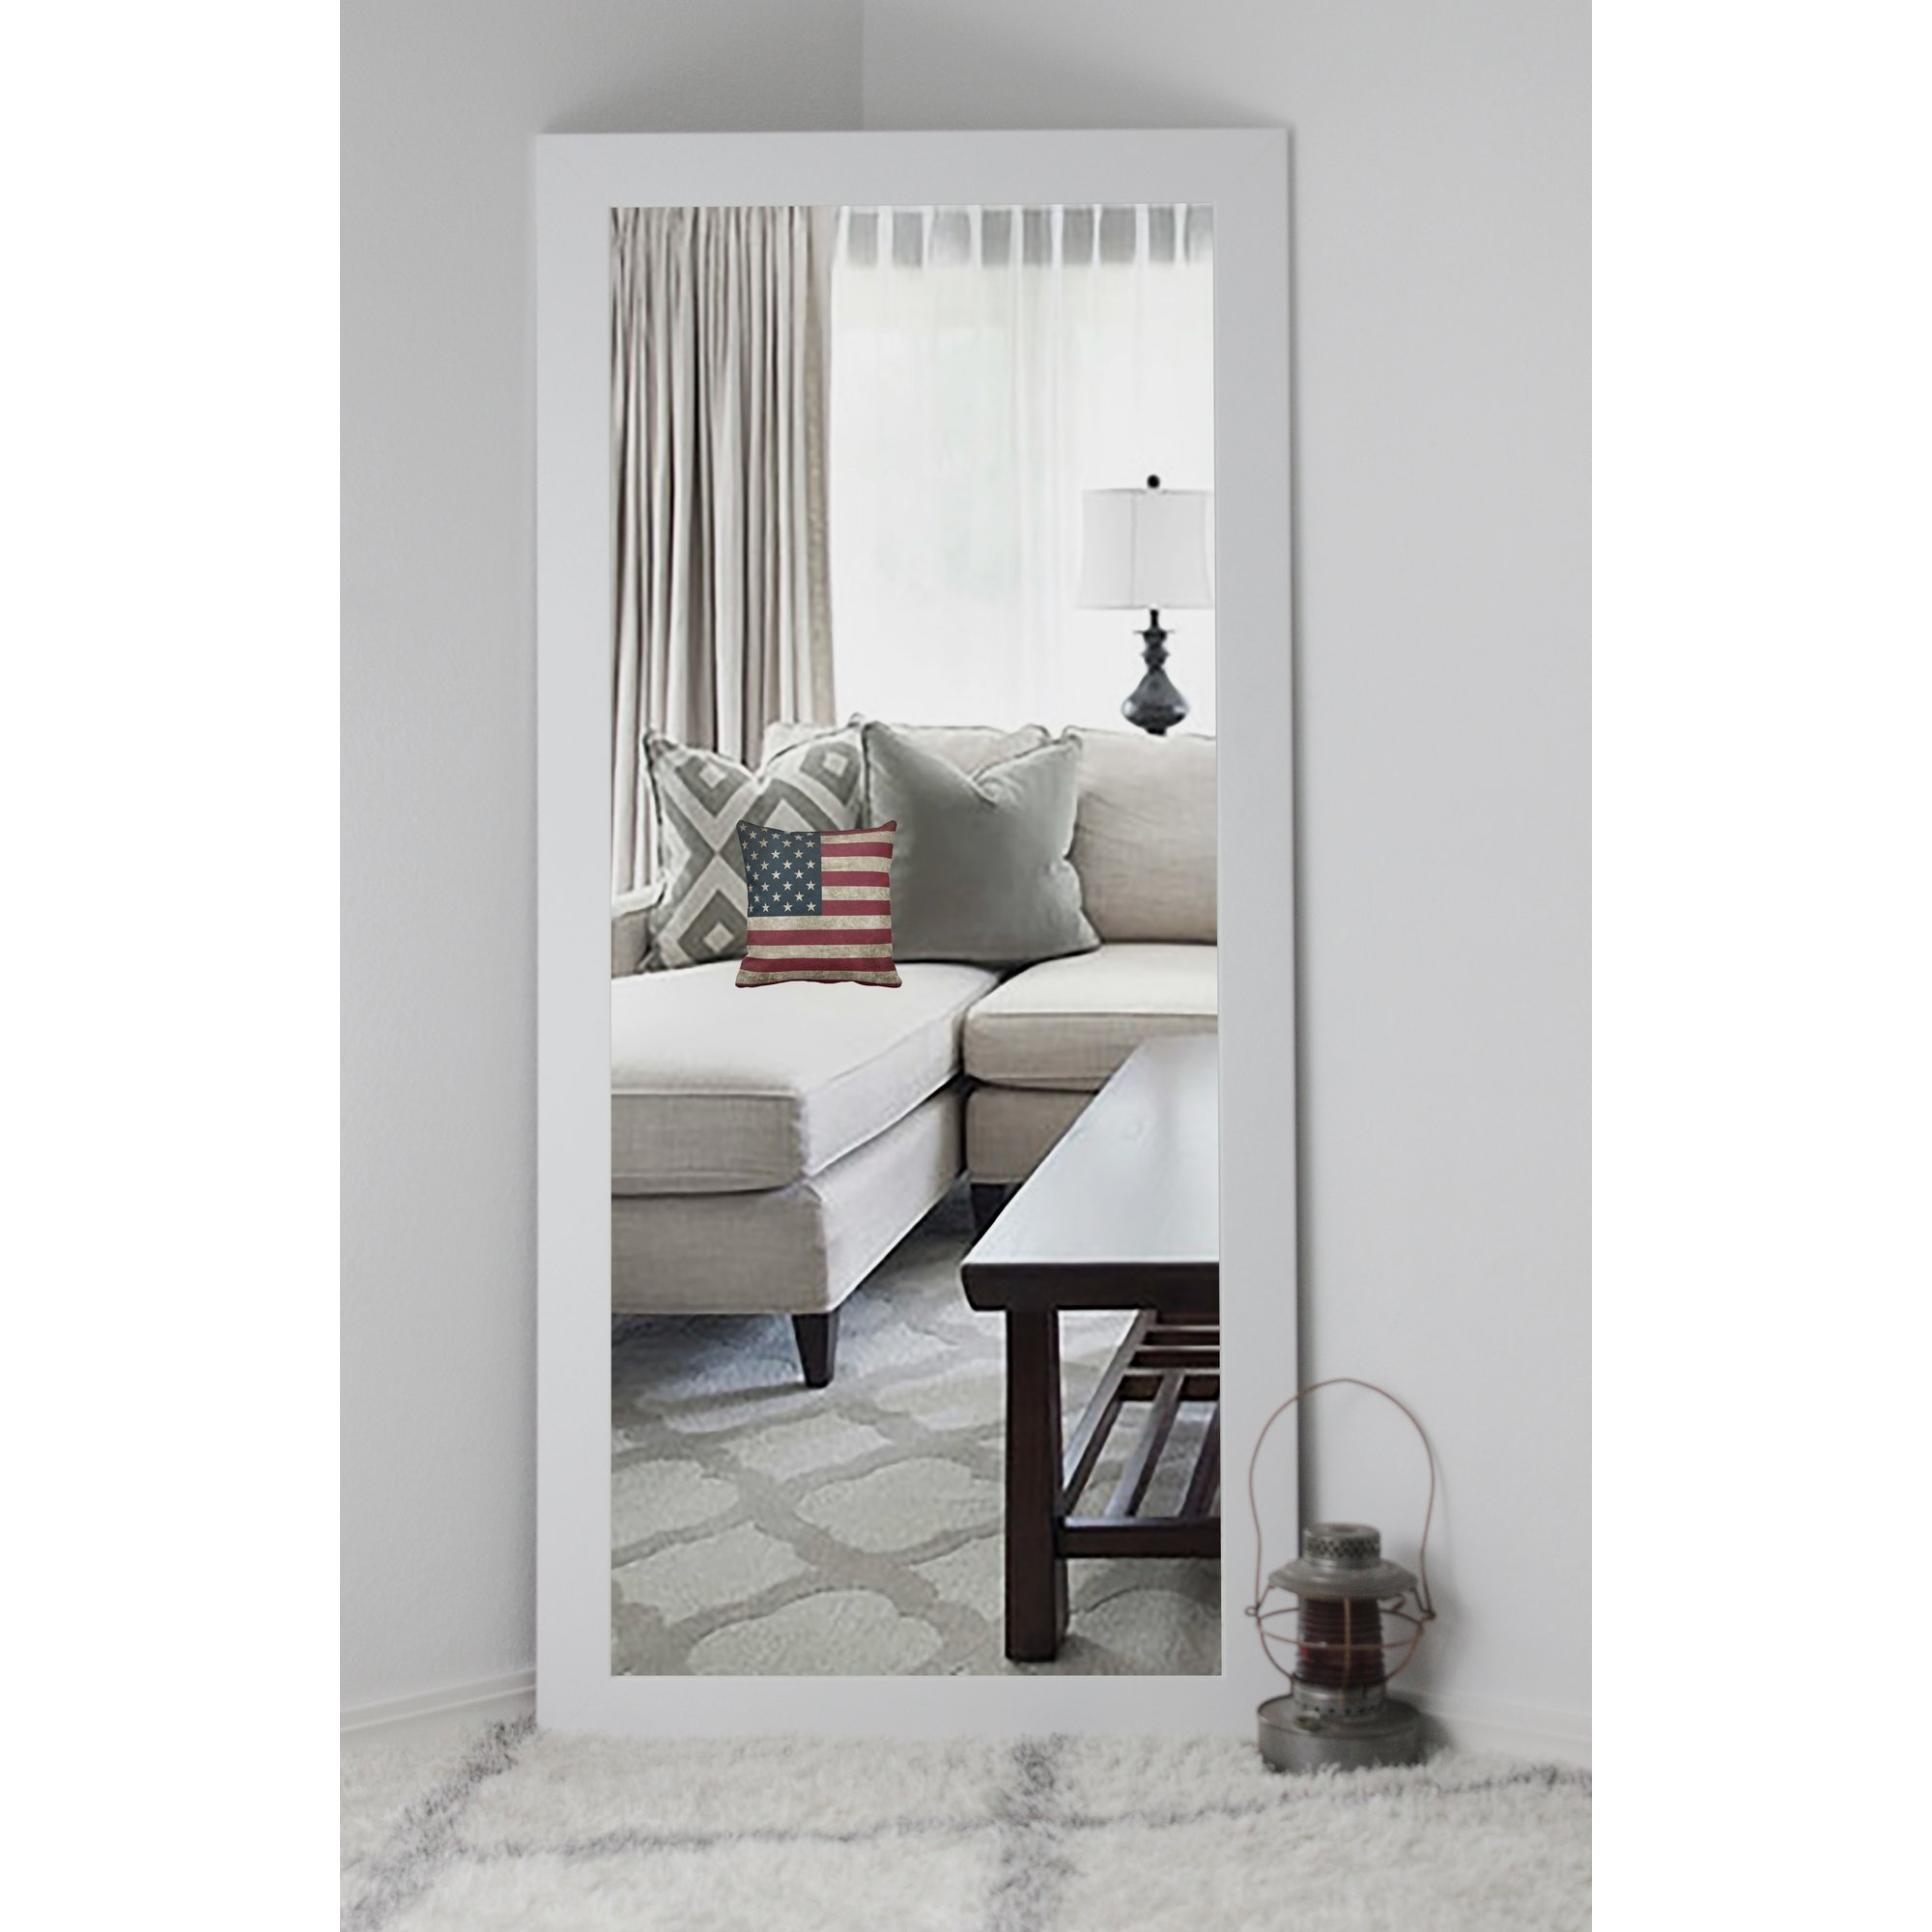 Modern Wall Mirrors Allmodern With Contemporary Wall Mirrors (Image 13 of 15)